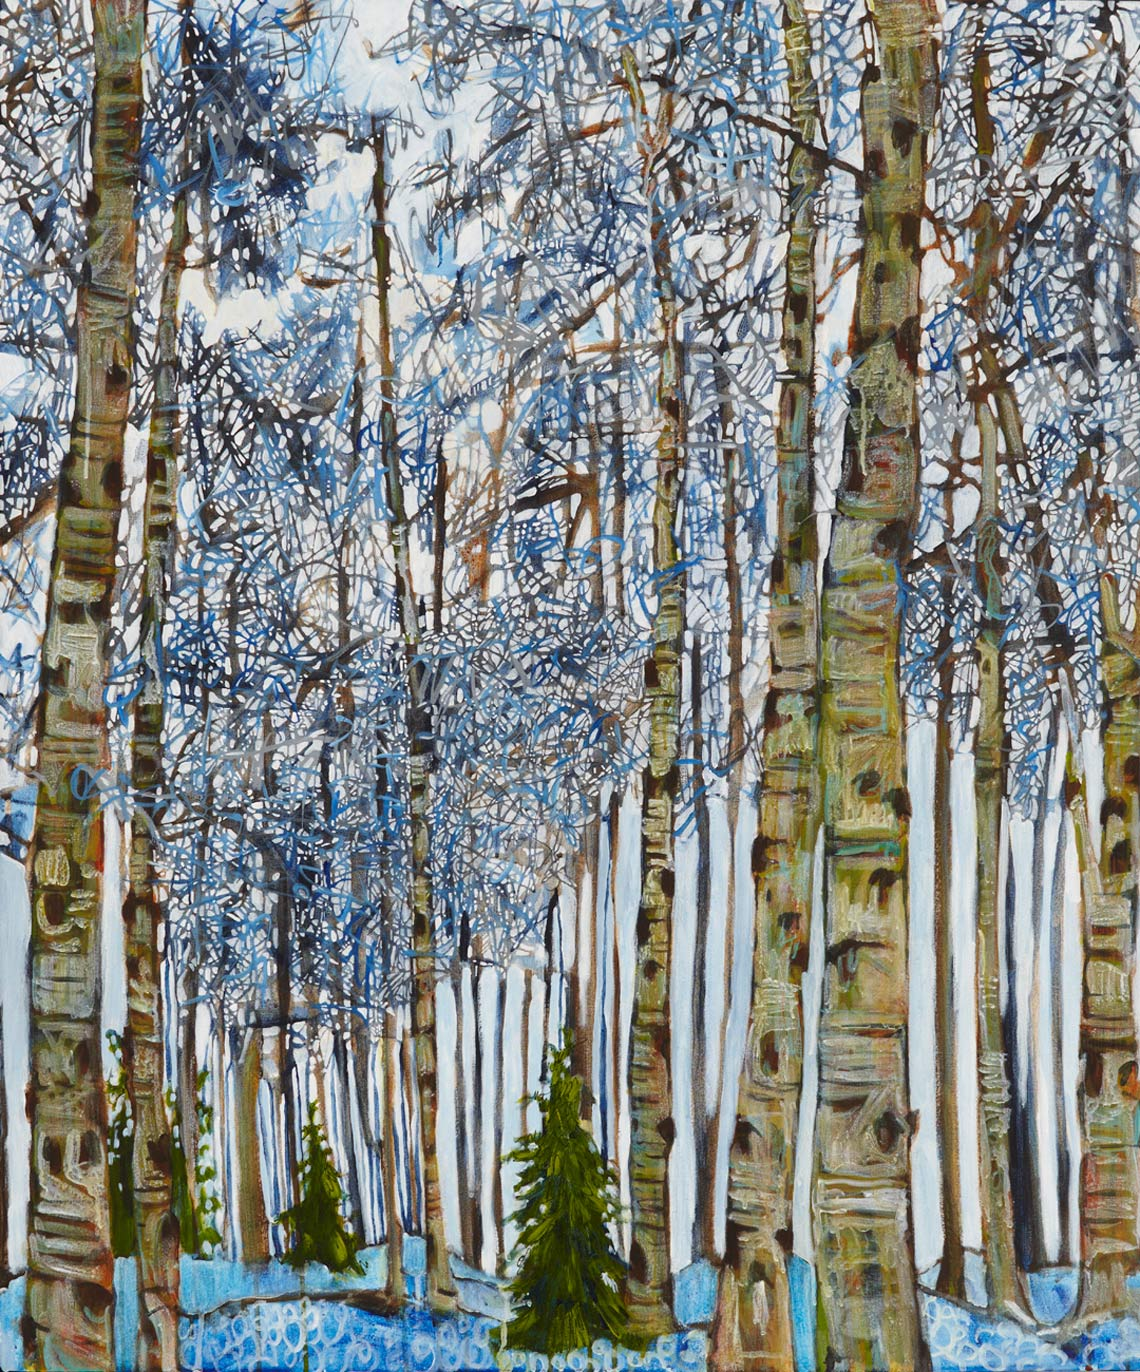 Aspens Lance Whitner Colorado Artist Mountain Painter Color Funky Contemporary Landscapes Paintings Steamboat Springs Pine Moon Fine Art twister cane